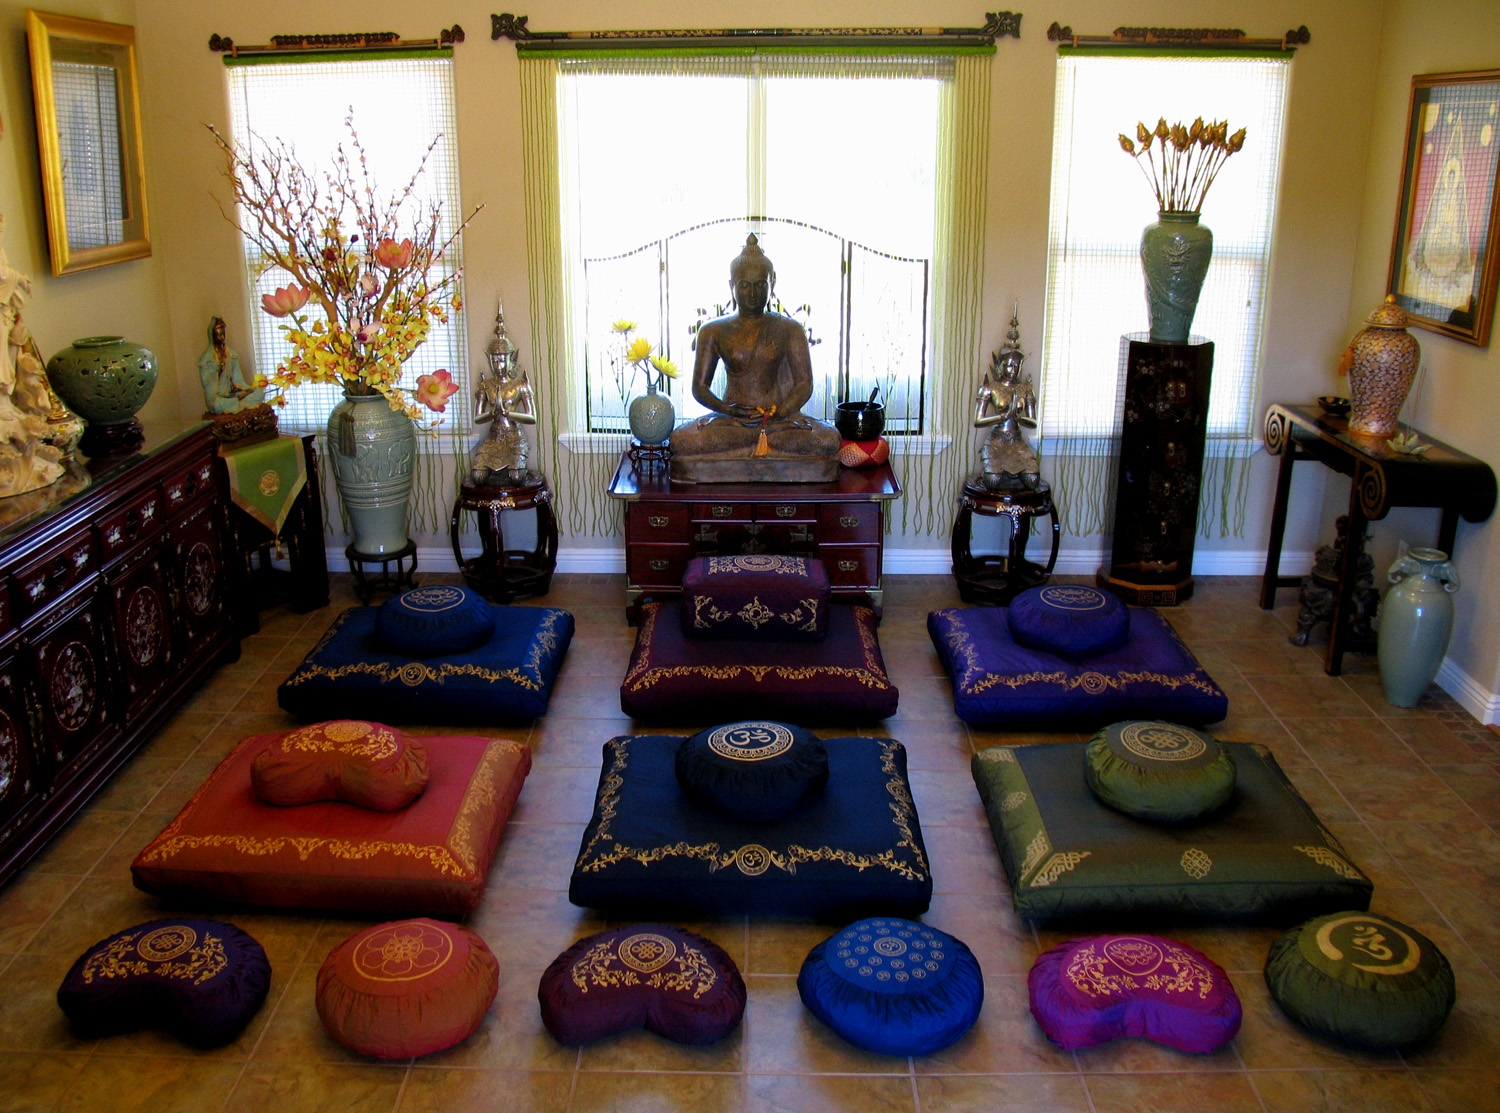 pillow buddhist personals 7 things to know about orgasmic meditation ami  and scattered with pillows  studies,' then graduating to buddhism and celibacy.